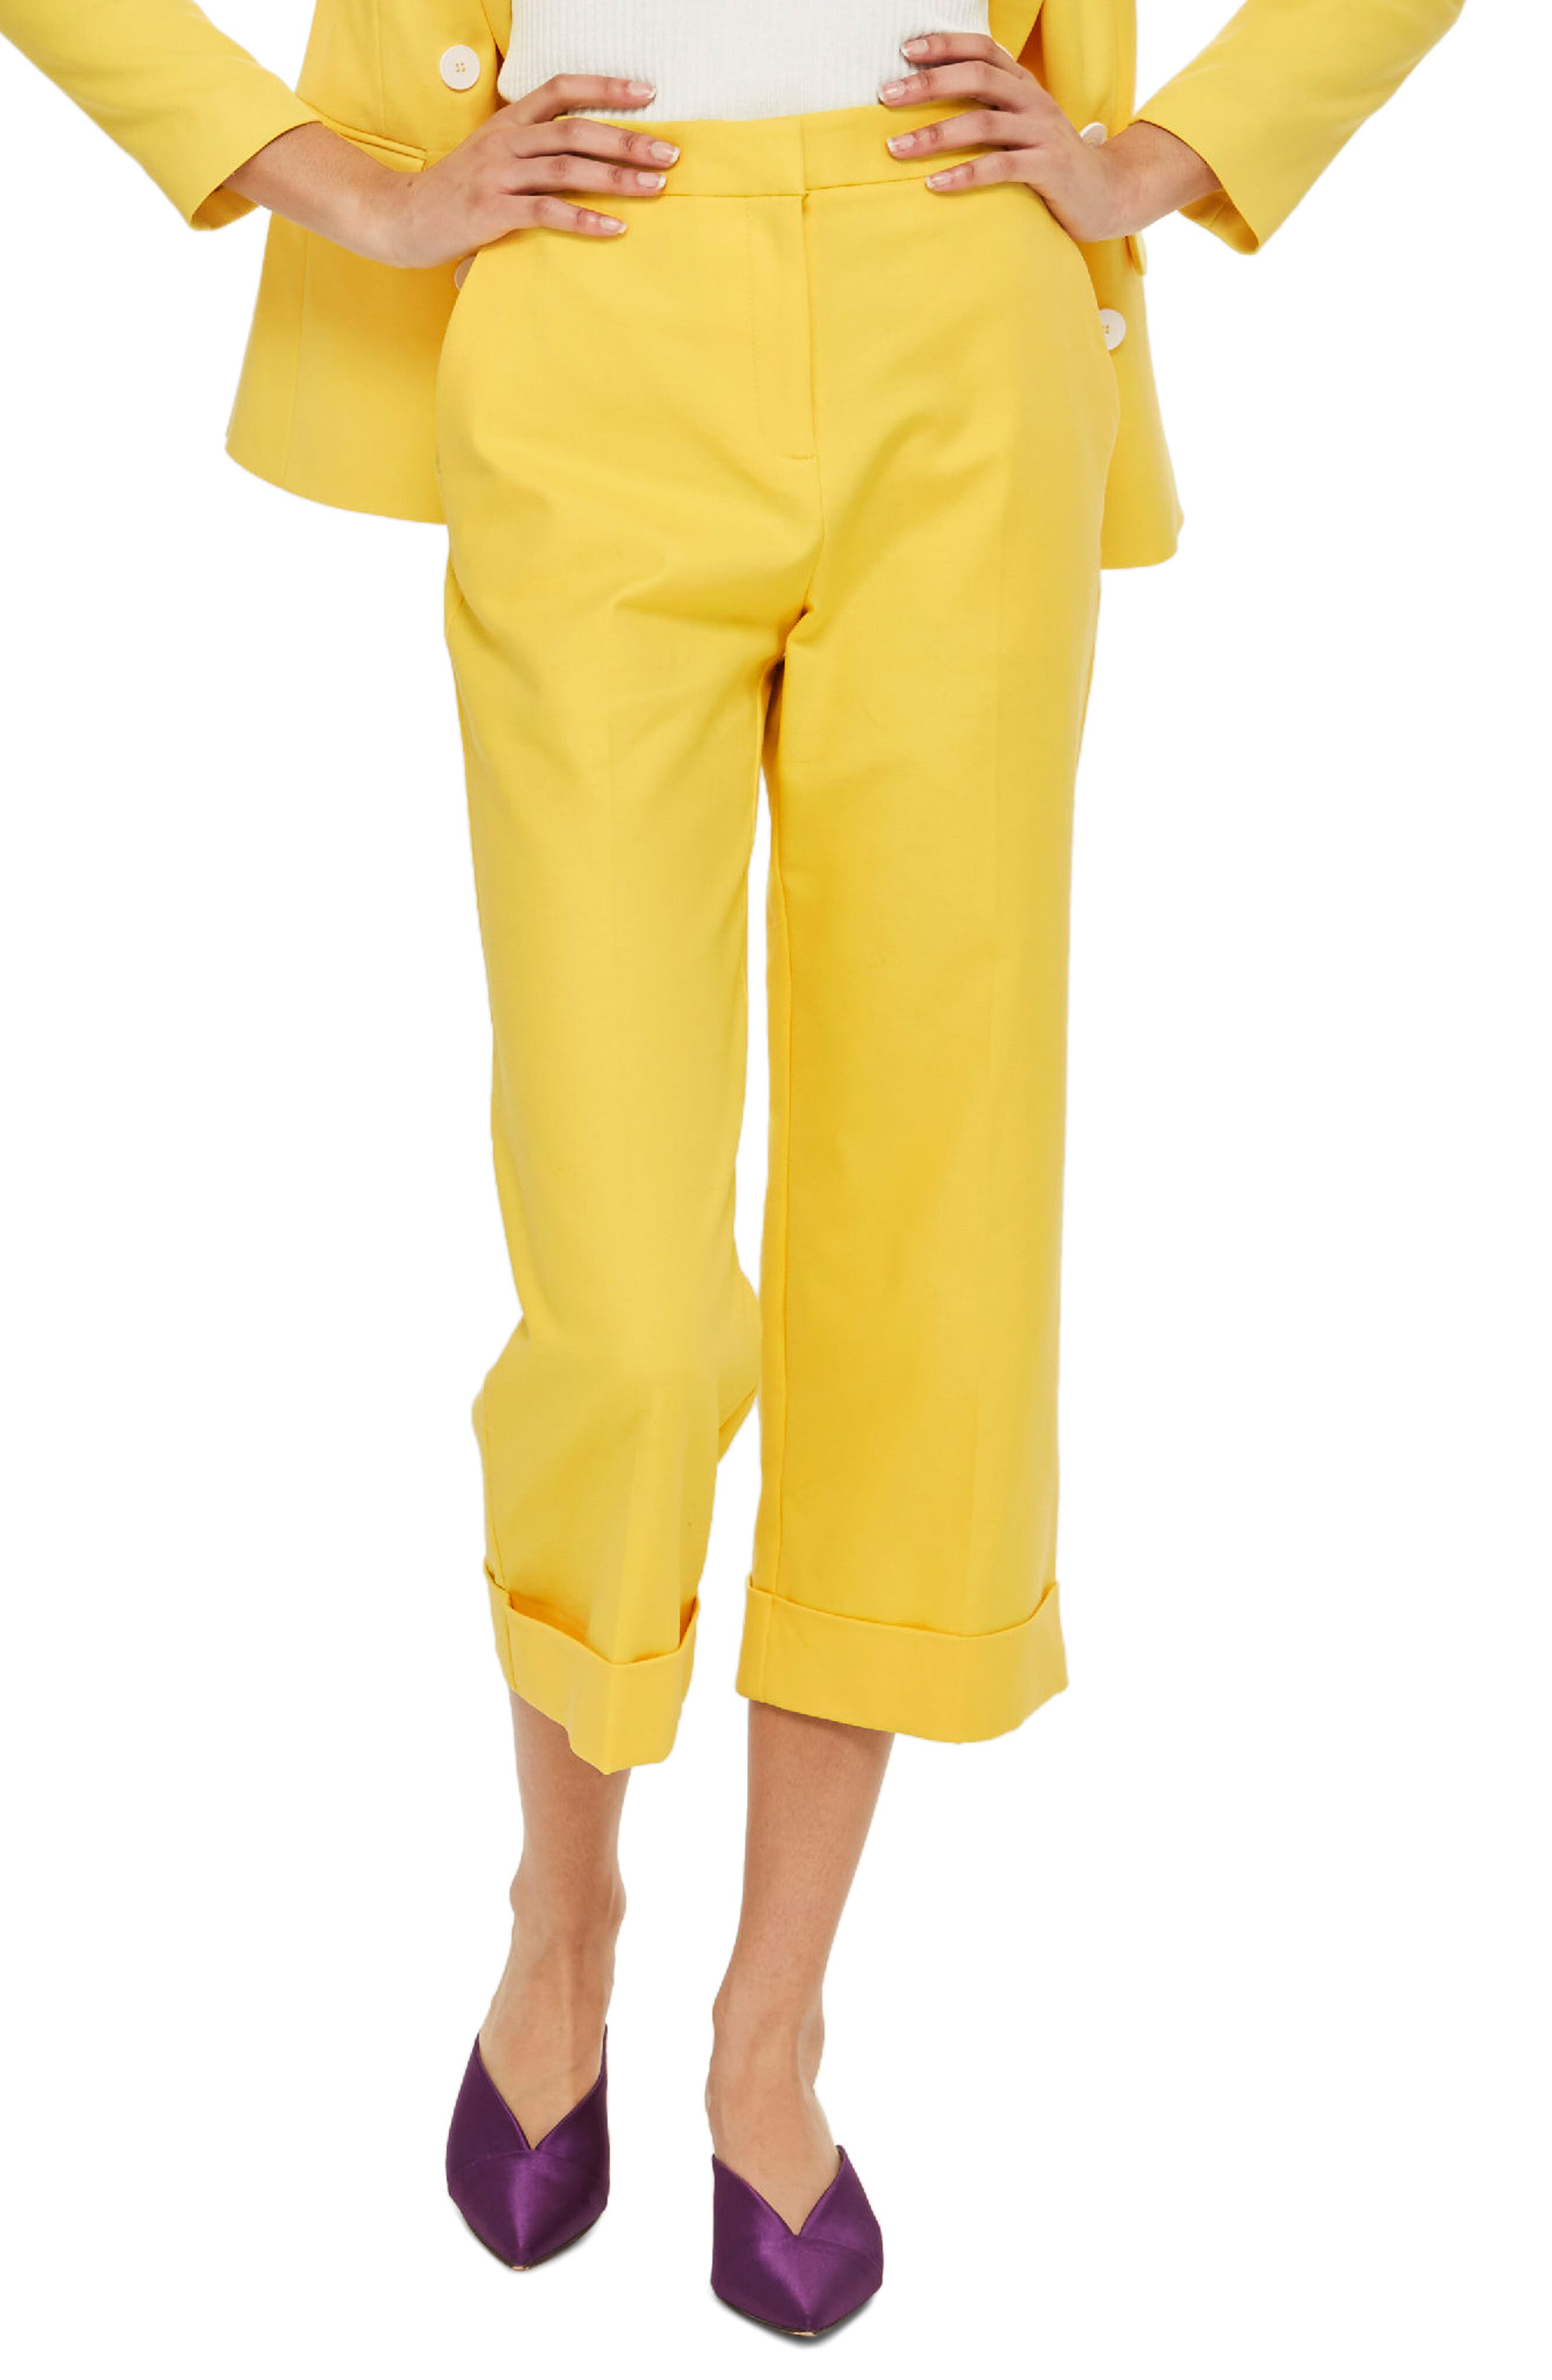 Milly Crop Suit Trousers,                         Main,                         color, Yellow